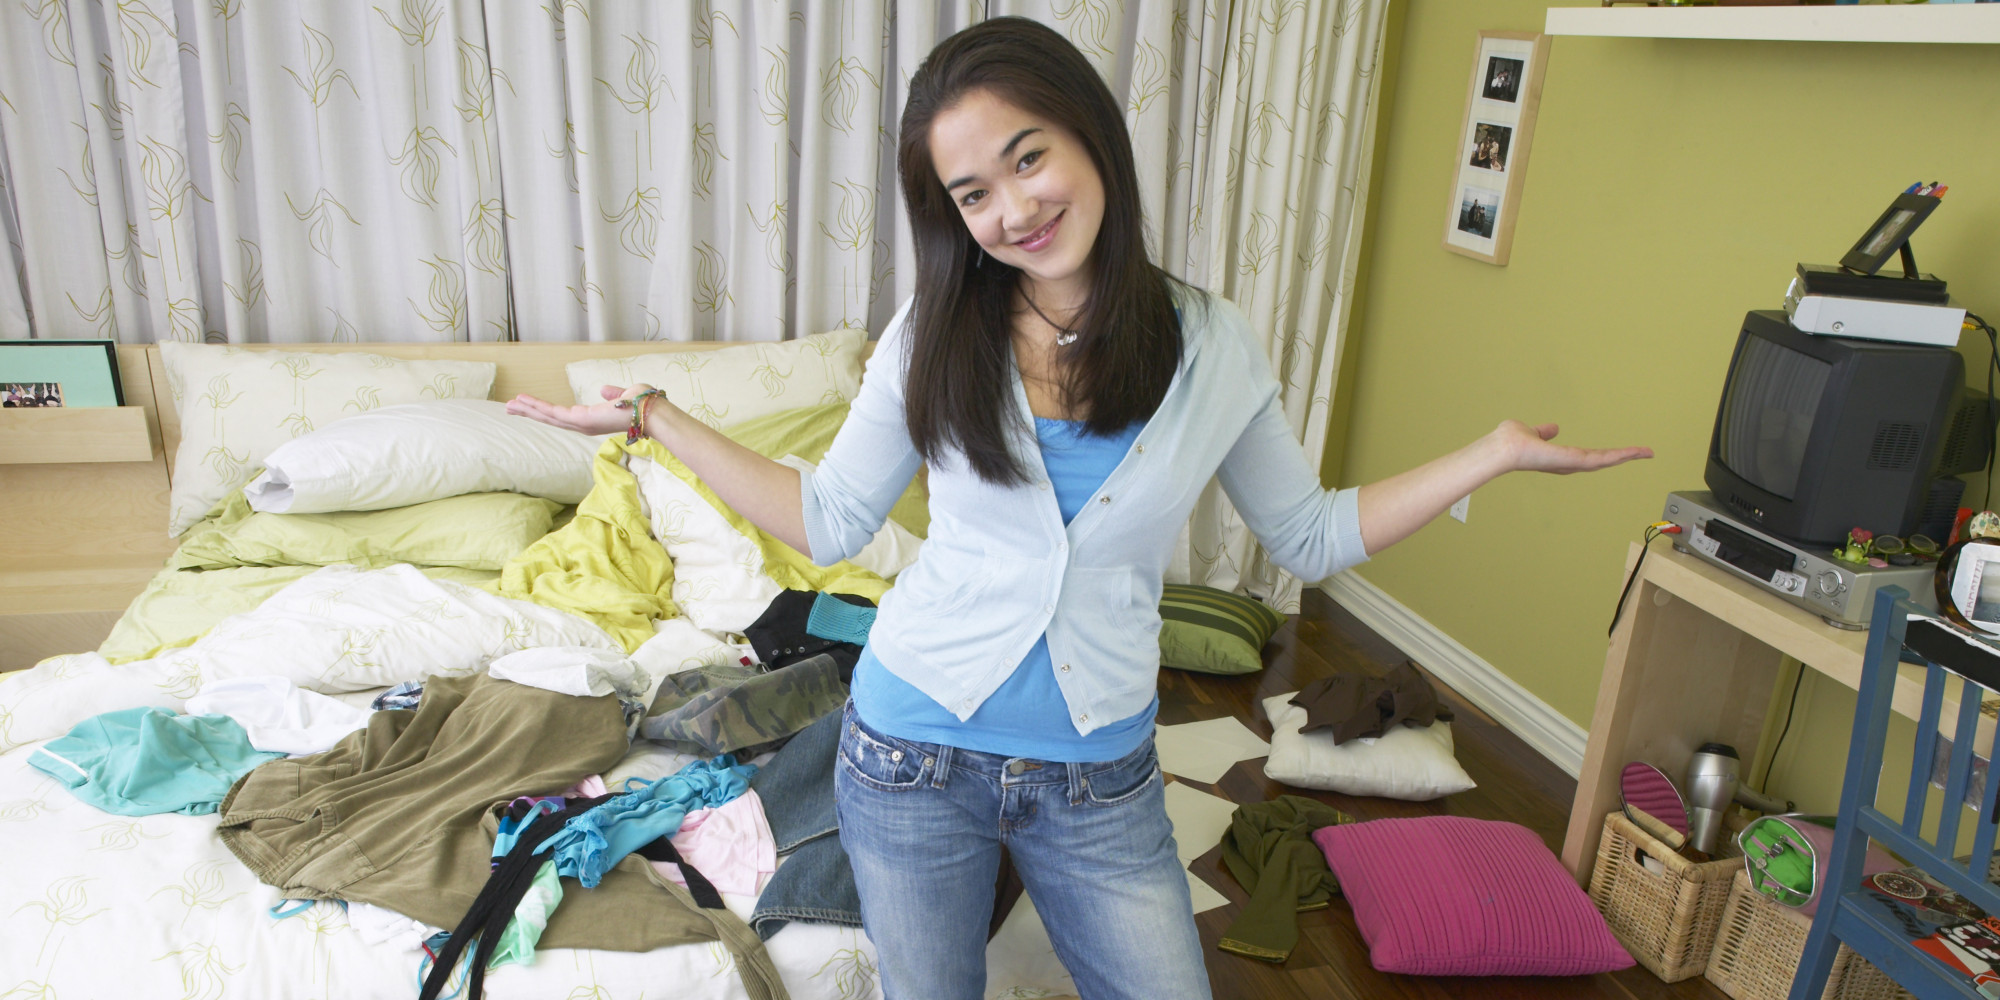 Why My Daughter's Messy Room Says More About Me Than It Does About Her |  HuffPost